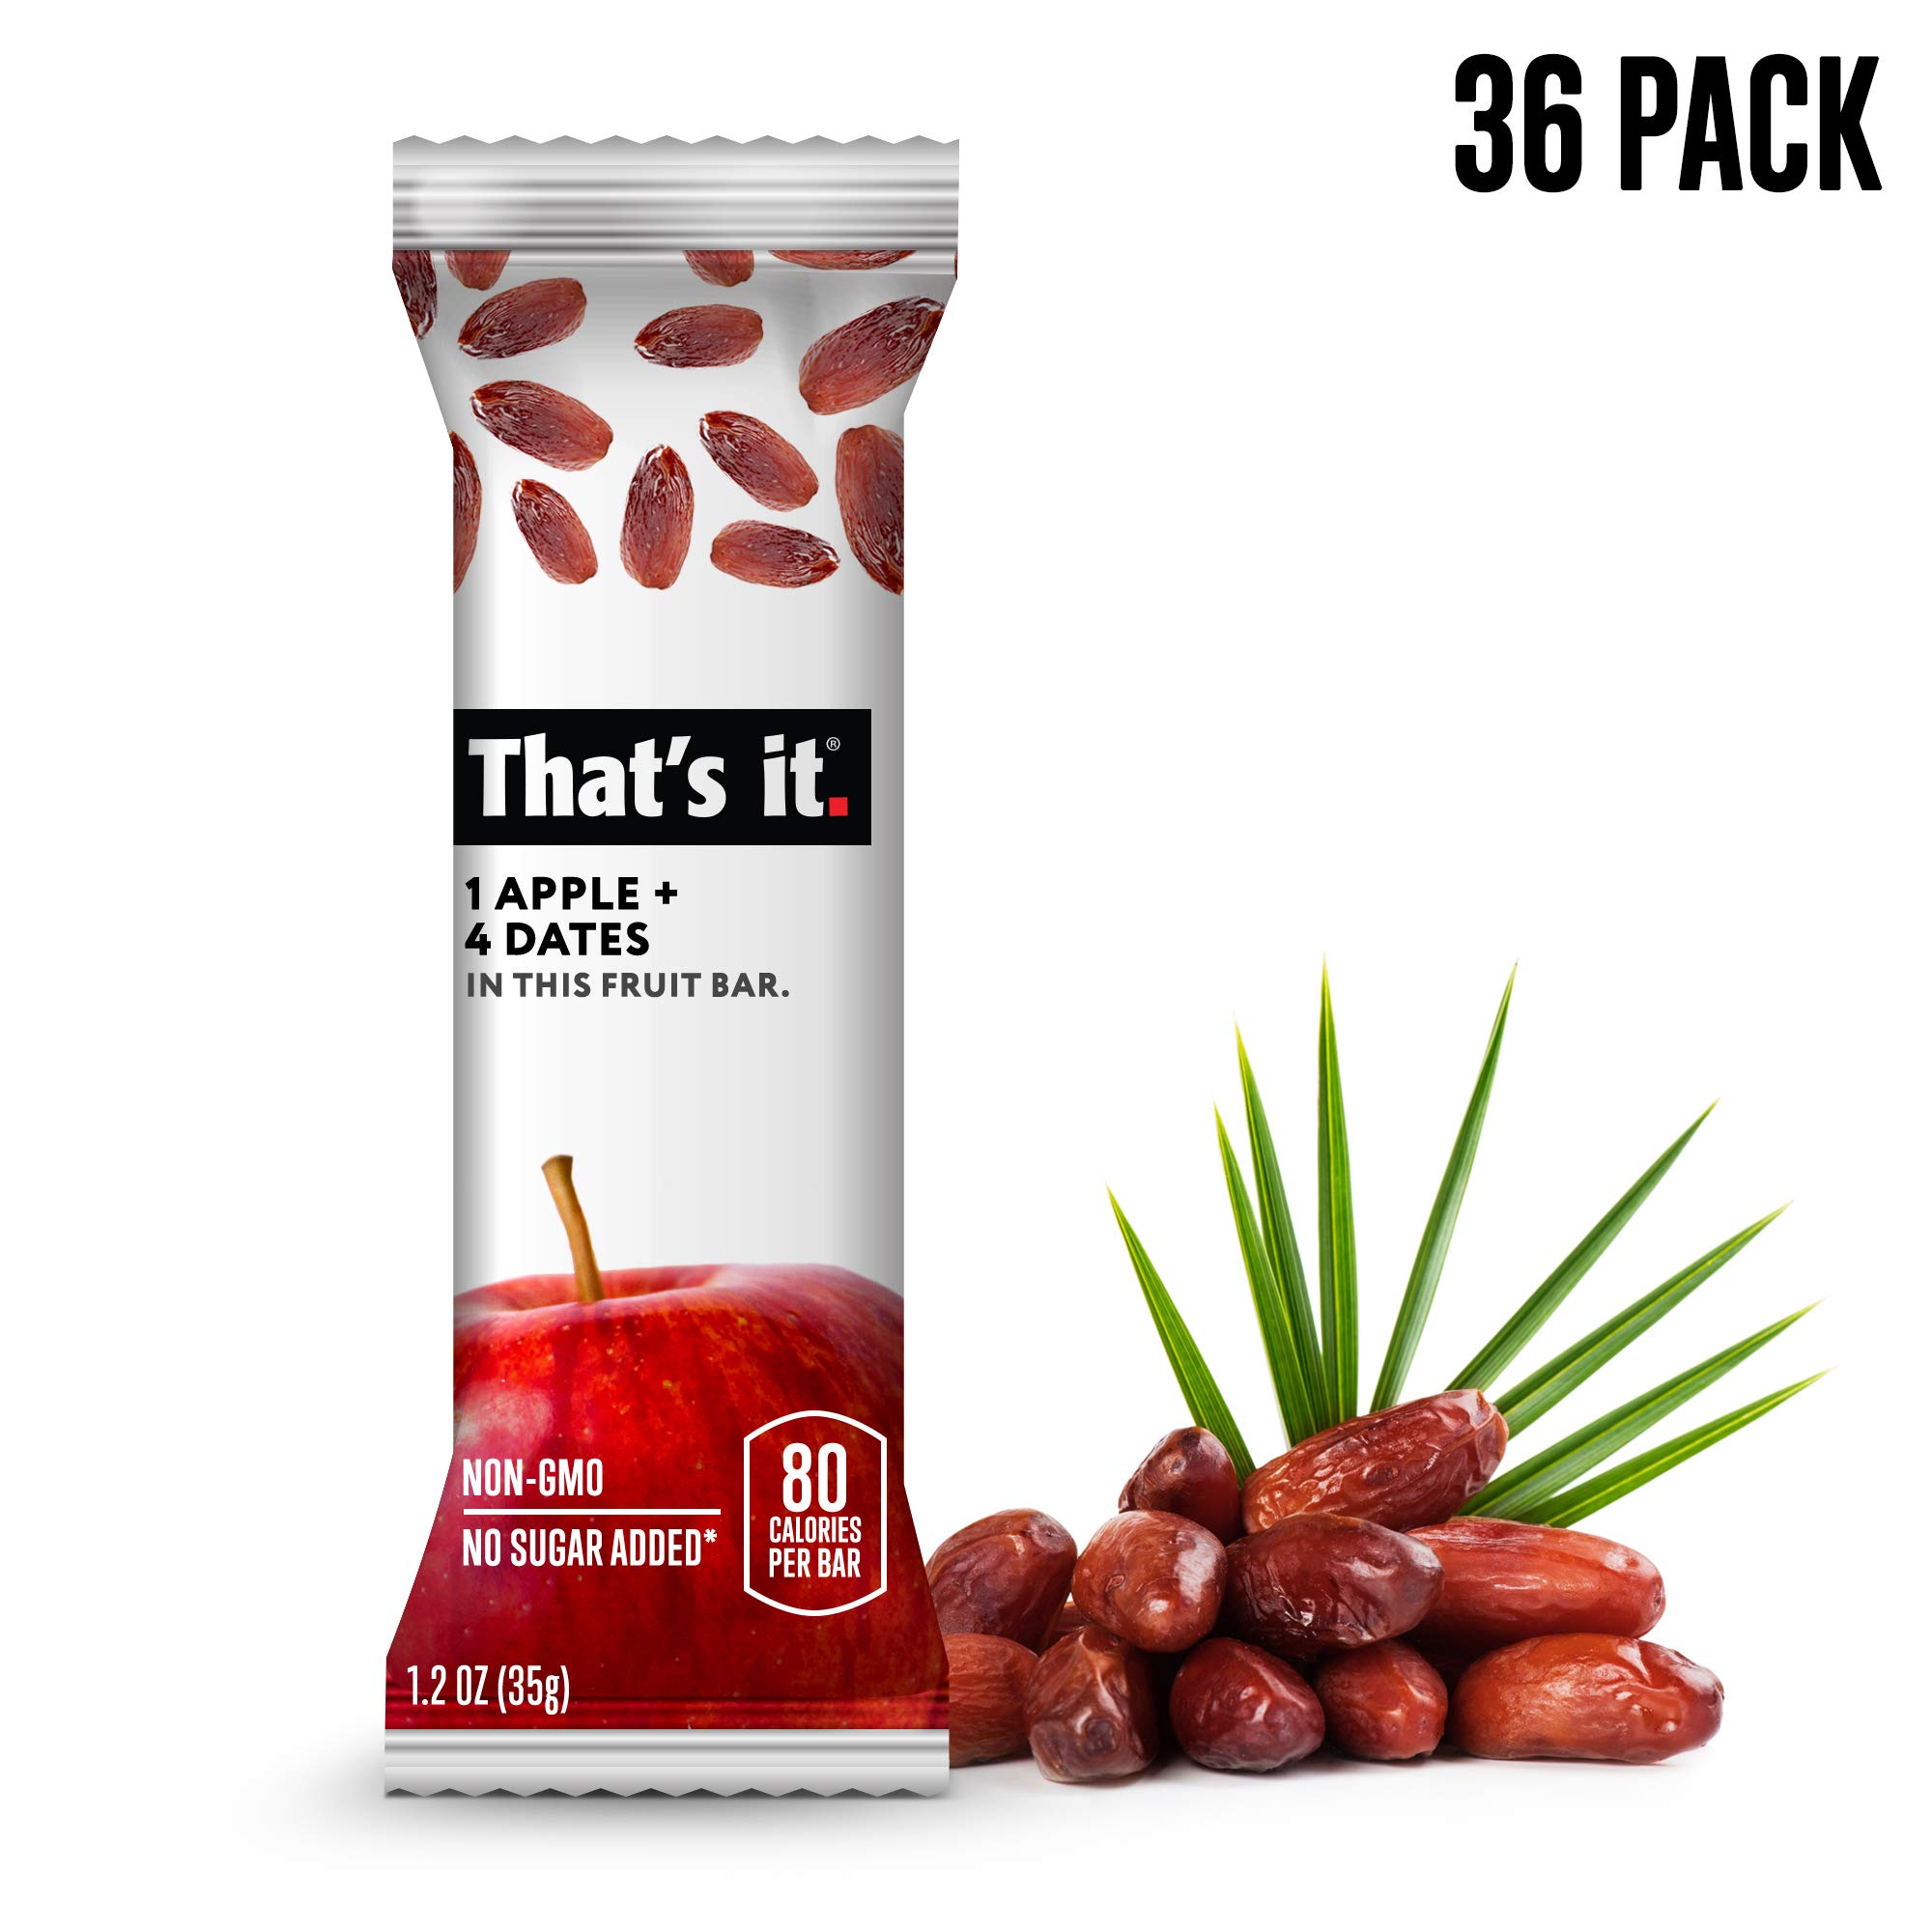 That's it. Apple + Date Fruit Bars 100% All Natural, No Artificial Ingredients or Preservatives Delicious Healthy Snack for Children & Adults, Vegan, Gluten Free, Paleo, Kosher, Non GMO (36 Pack)